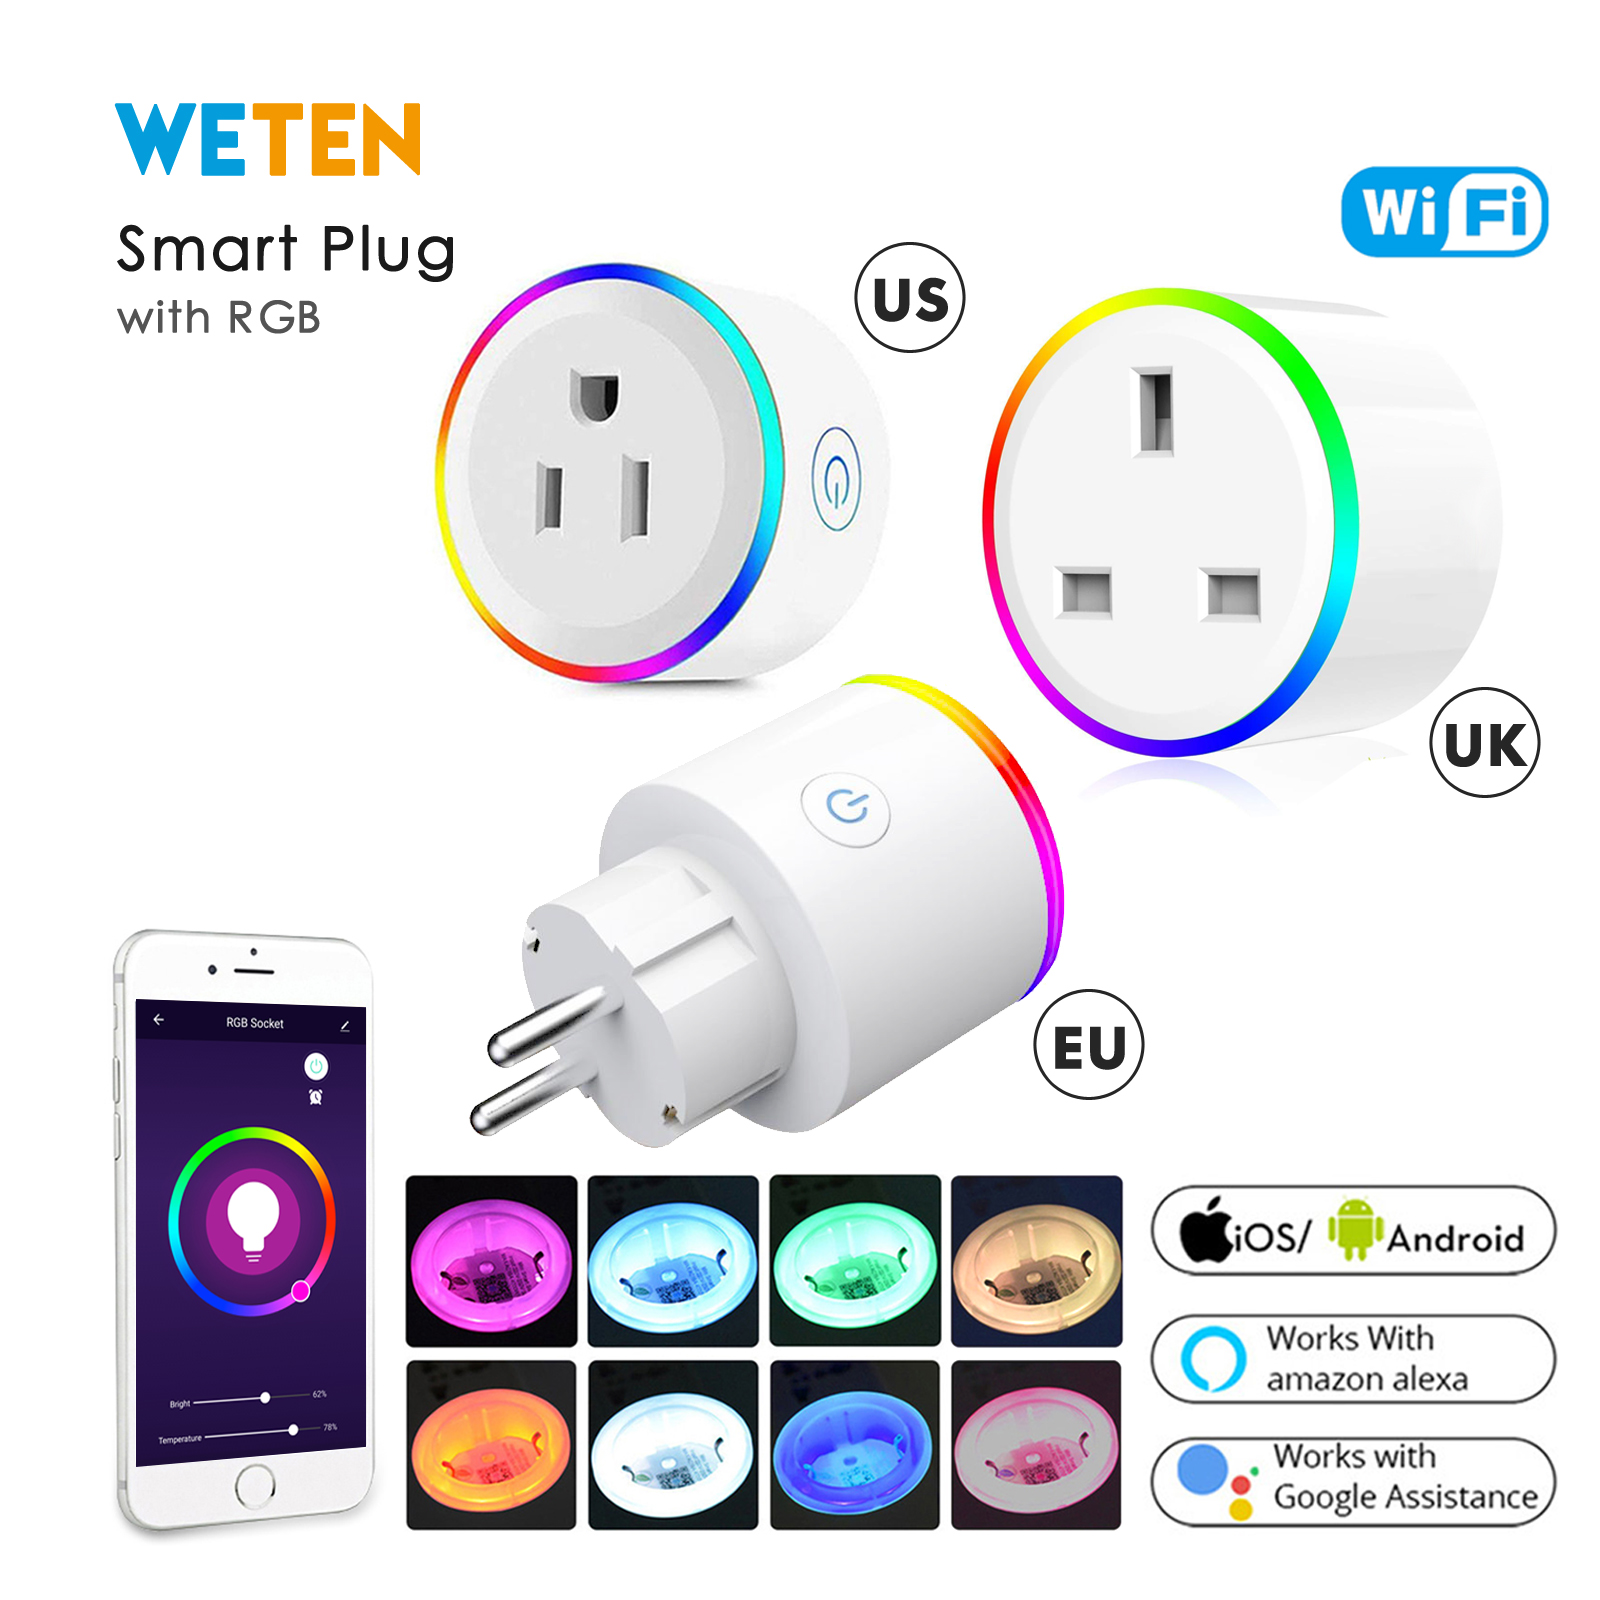 Wifi Smart Power Socket Plug Outlet Switch RGB Light Power Monitor EU UK US 16A Phone App Voice Control with Alexa Google HomeWifi Smart Power Socket Plug Outlet Switch RGB Light Power Monitor EU UK US 16A Phone App Voice Control with Alexa Google Home